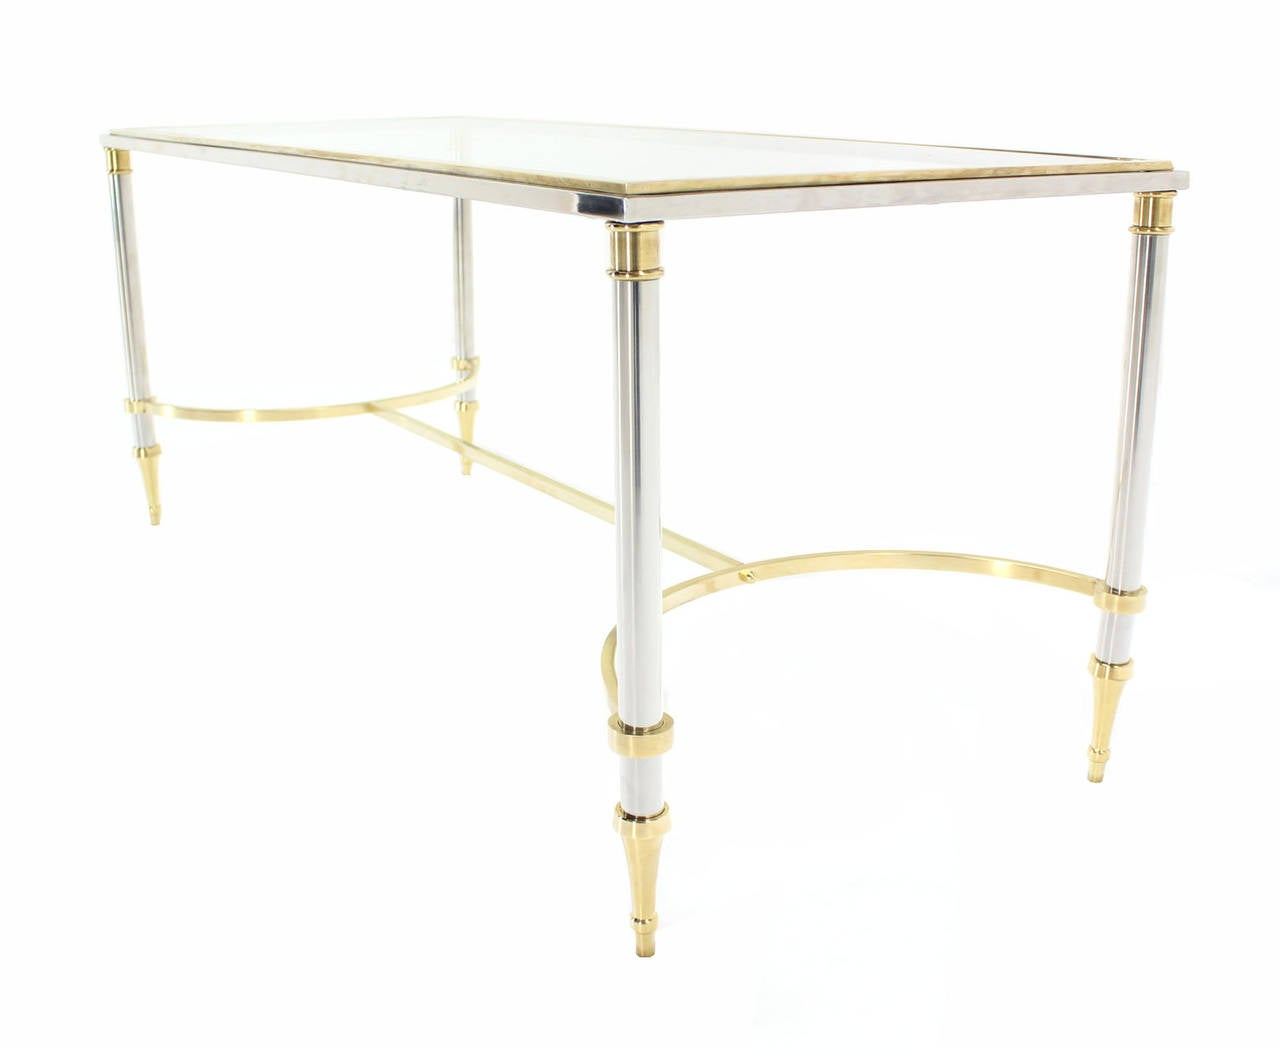 Chrome, Brass, and Glass-Top U-Shape Stretcher Coffee Table in Jansen Style In Excellent Condition For Sale In Blairstown, NJ